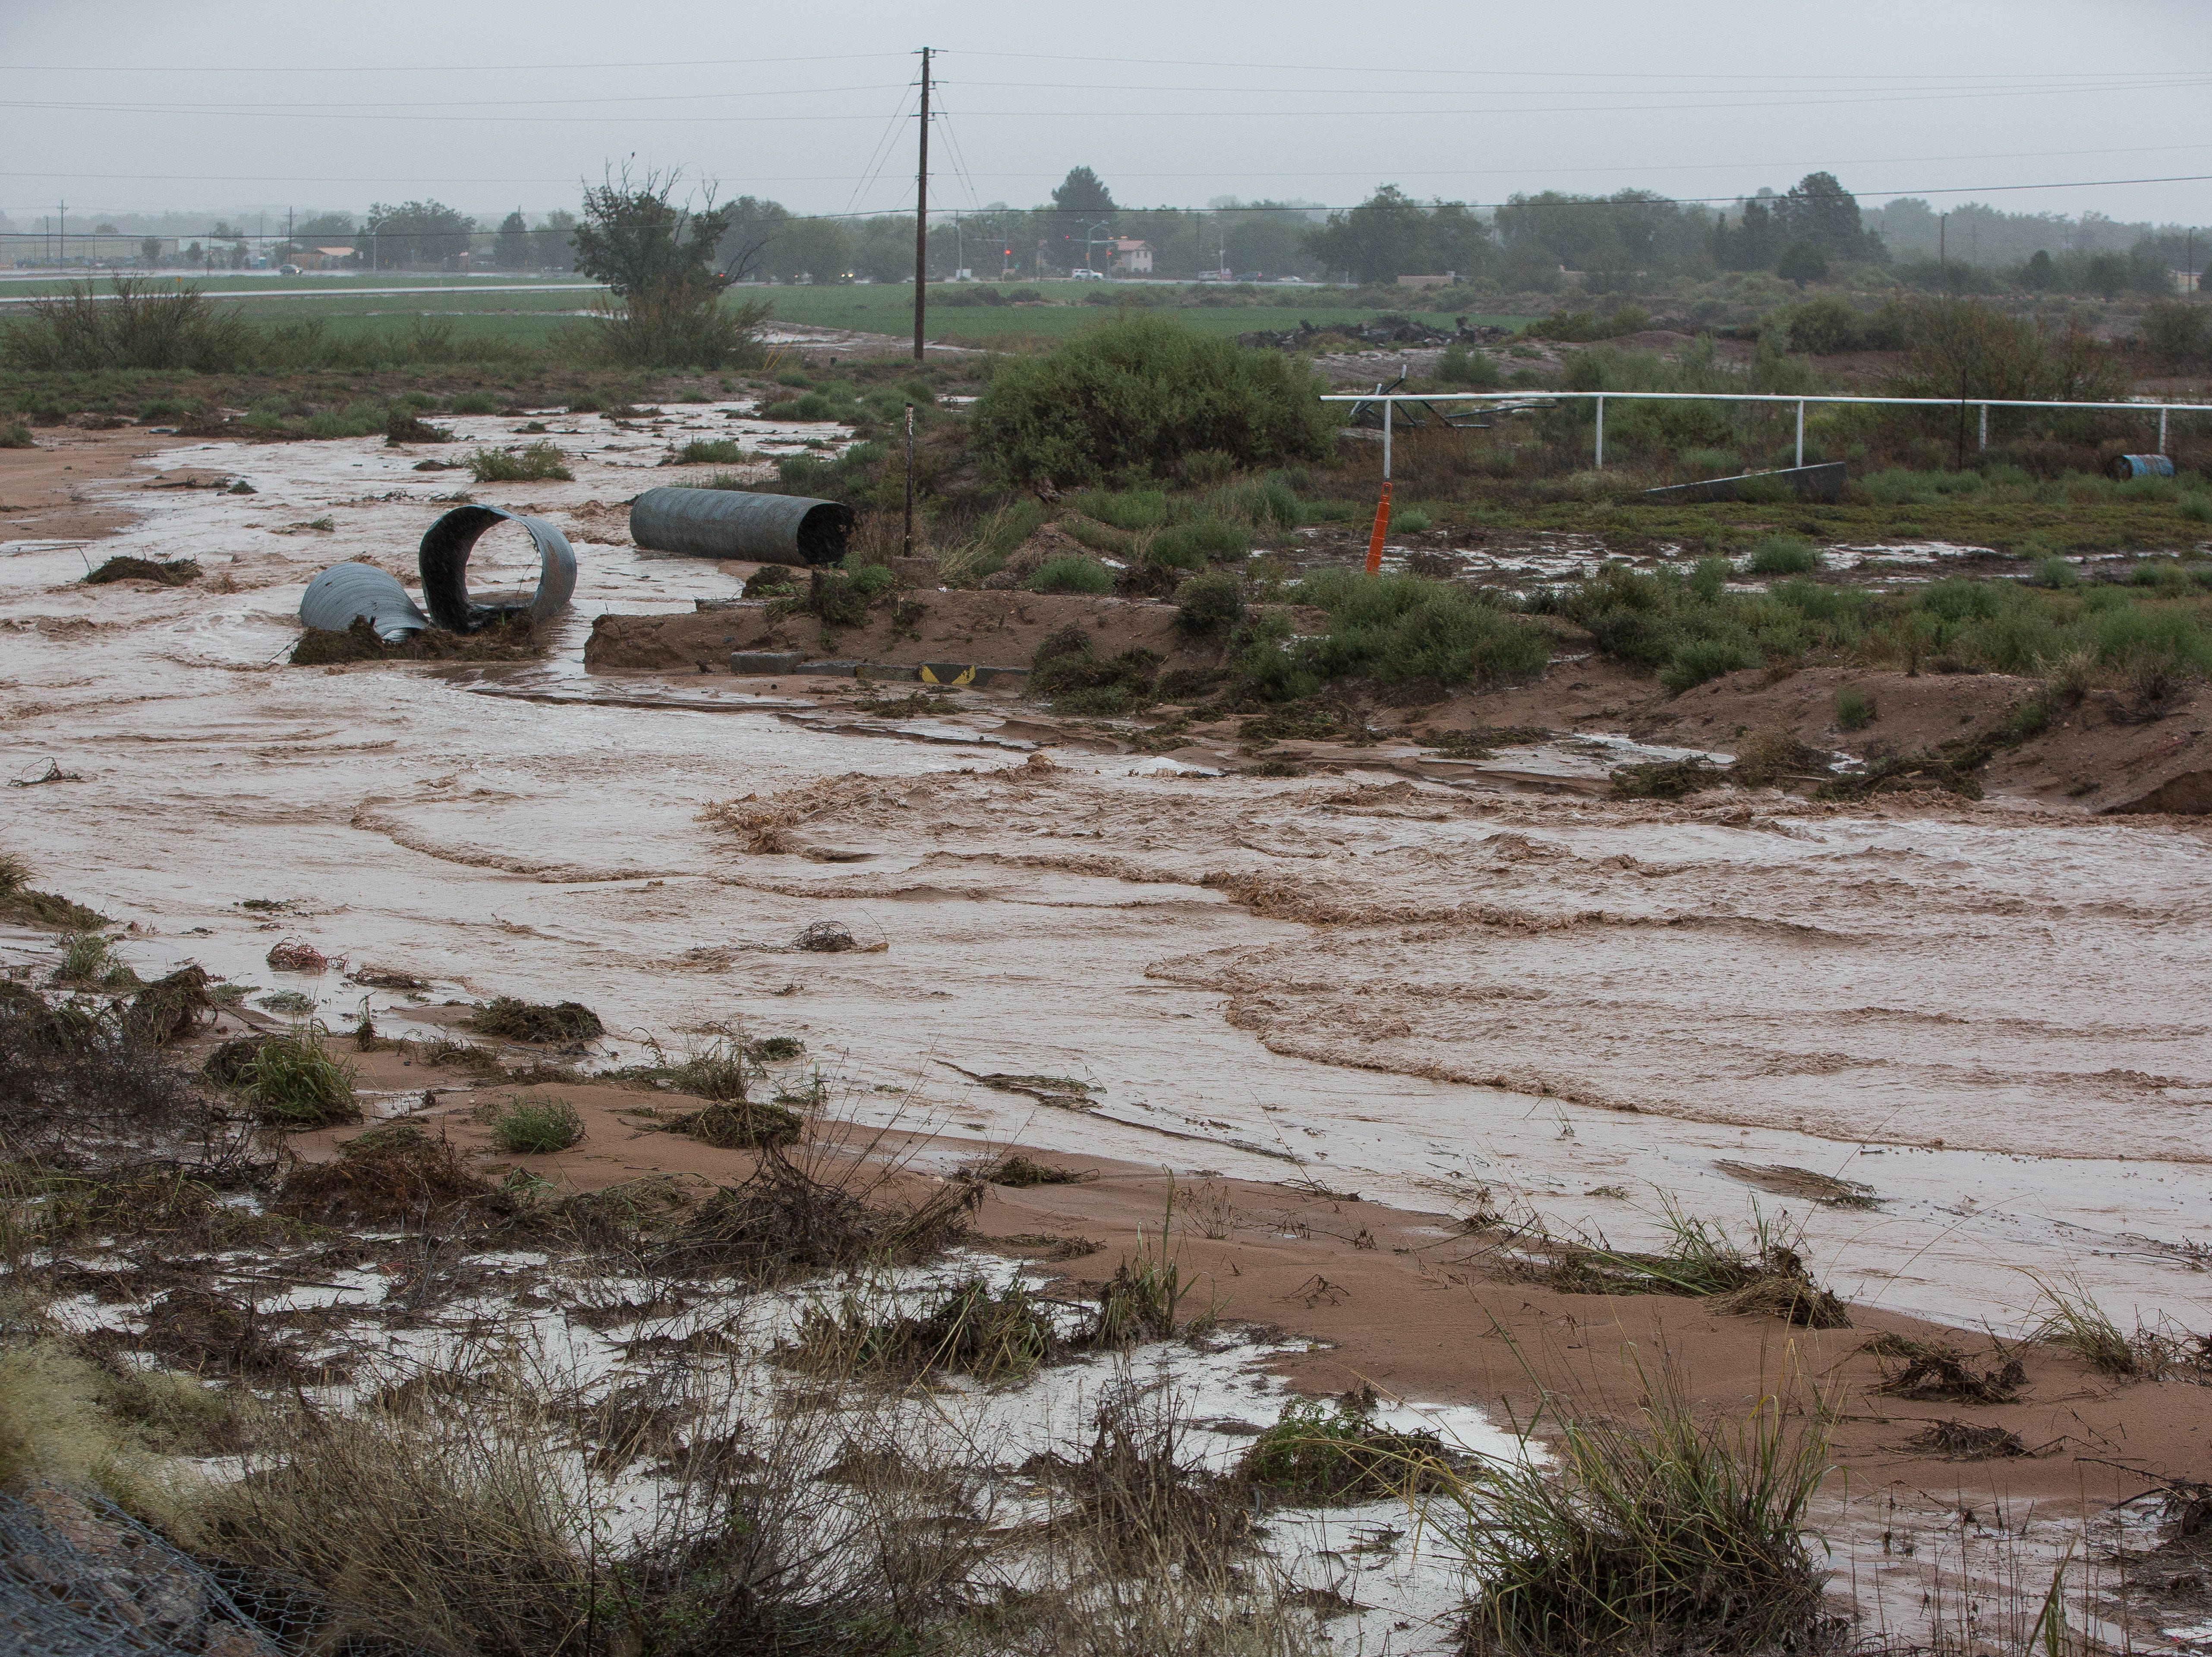 Heavy  rains filled arroyo in the area including one in the Picacho Hills area. Tuesday  October 23, 2018.